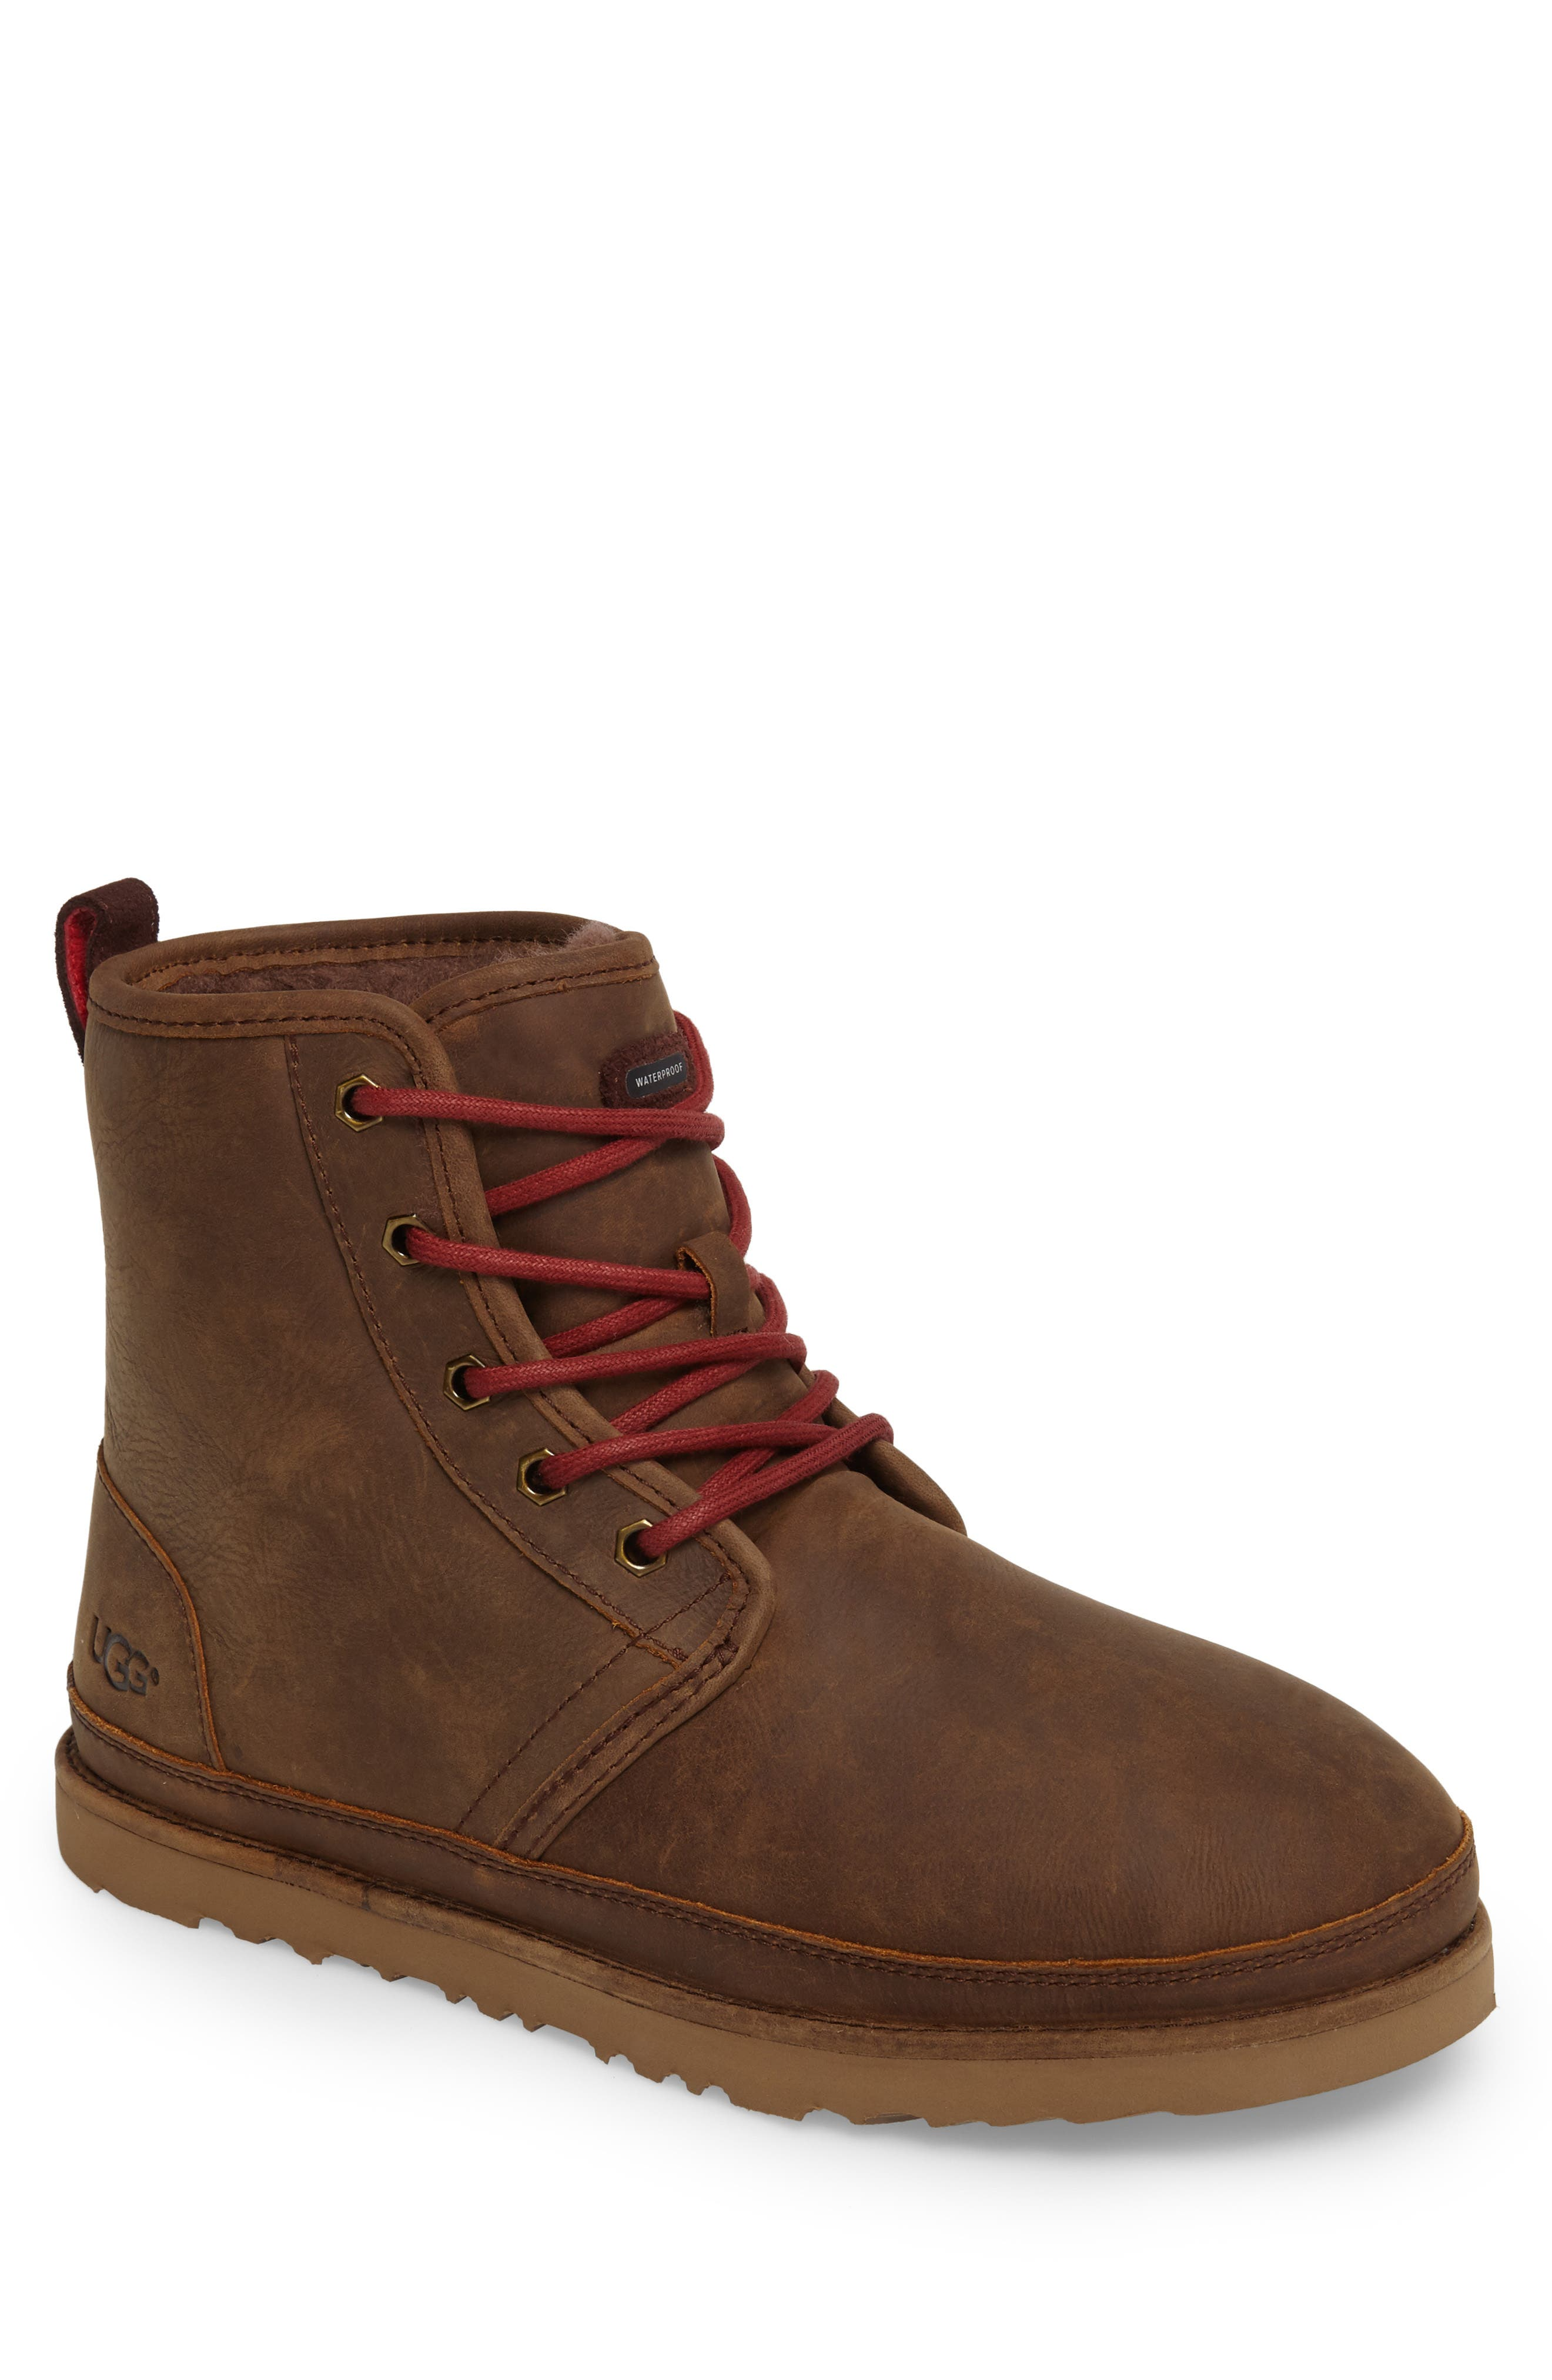 Men'S Harkley Waterproof Nubuck Leather Cold-Weather Boots in Grizzly